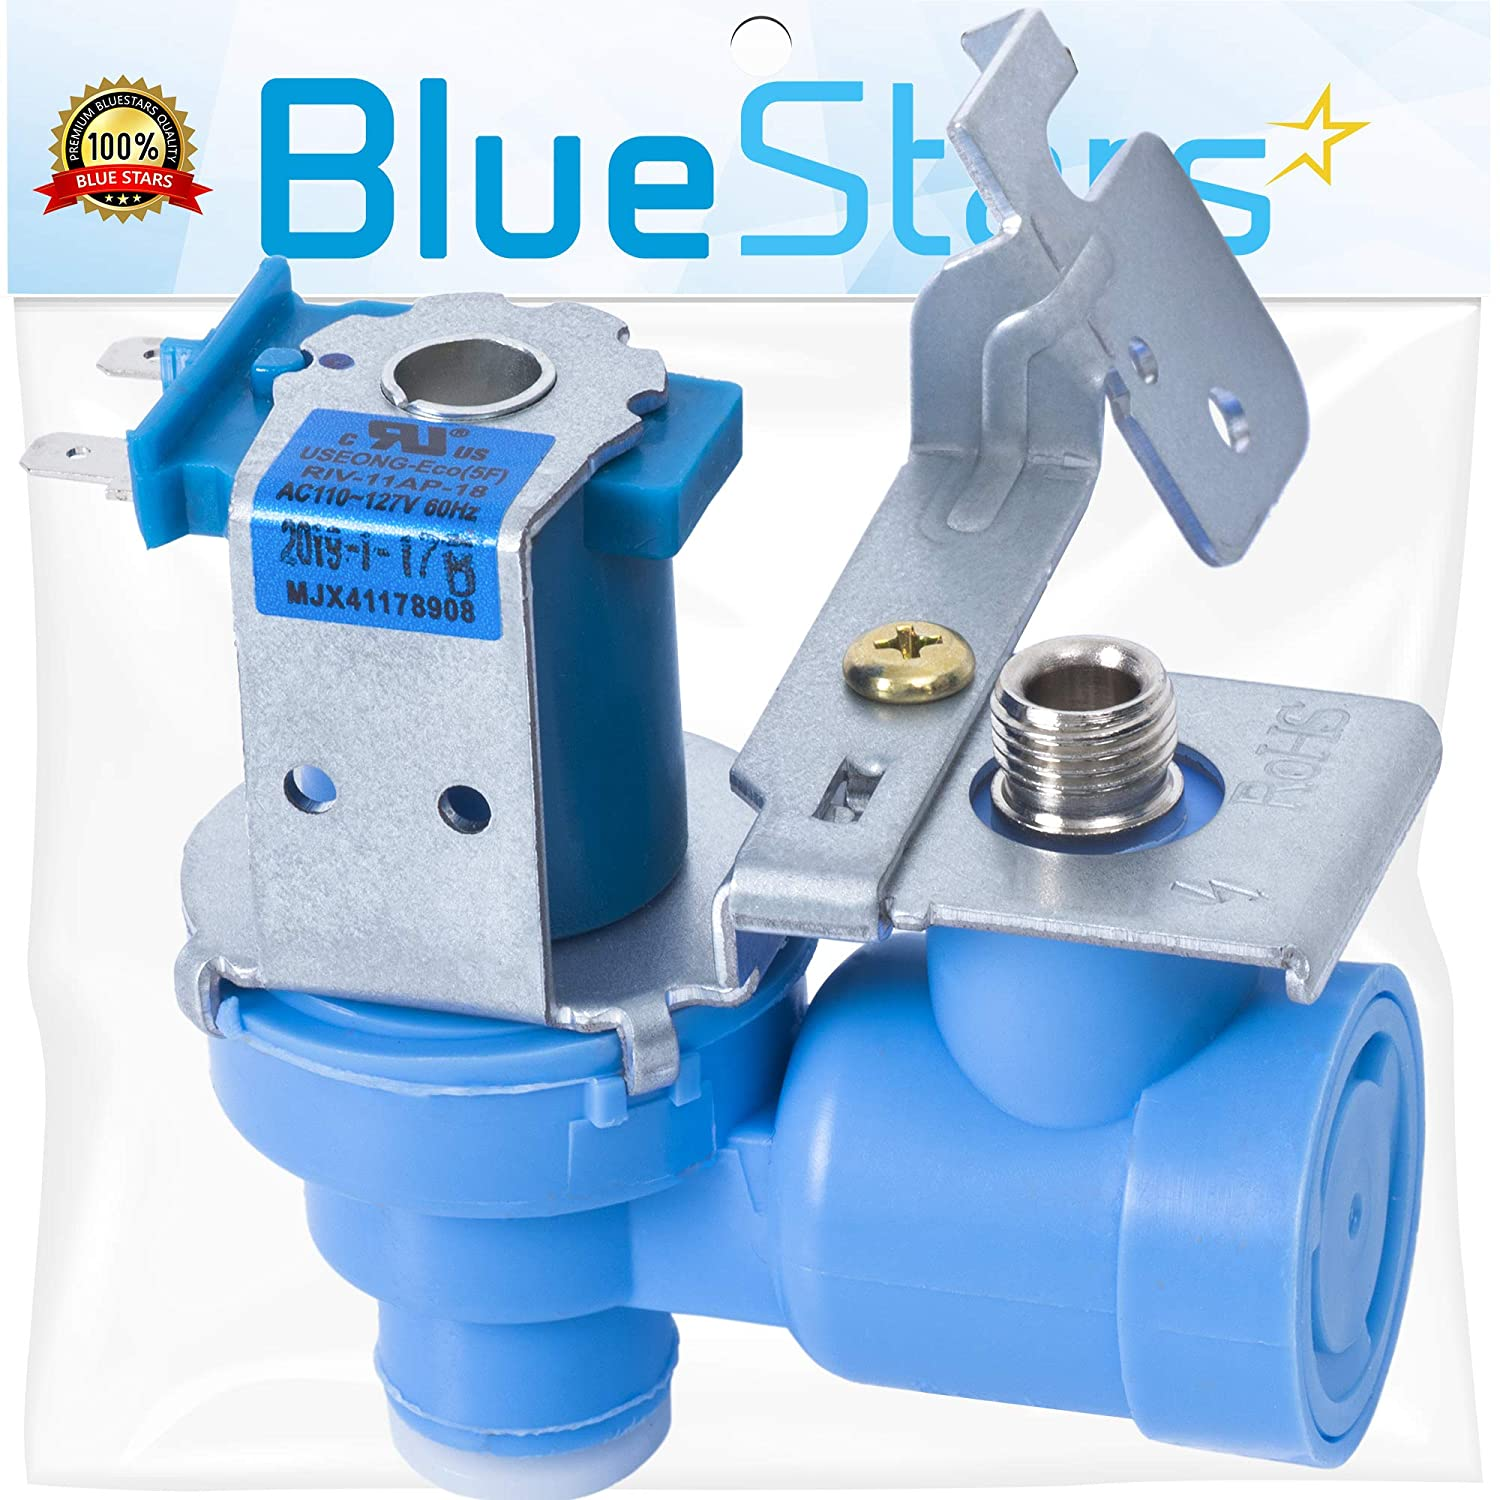 Ultra Durable MJX41178908 Refrigerator Water Valve Replacement Part by Blue Stars - Exact Fit for LG Refrigerators - Replaces AP4451762, PS3536019